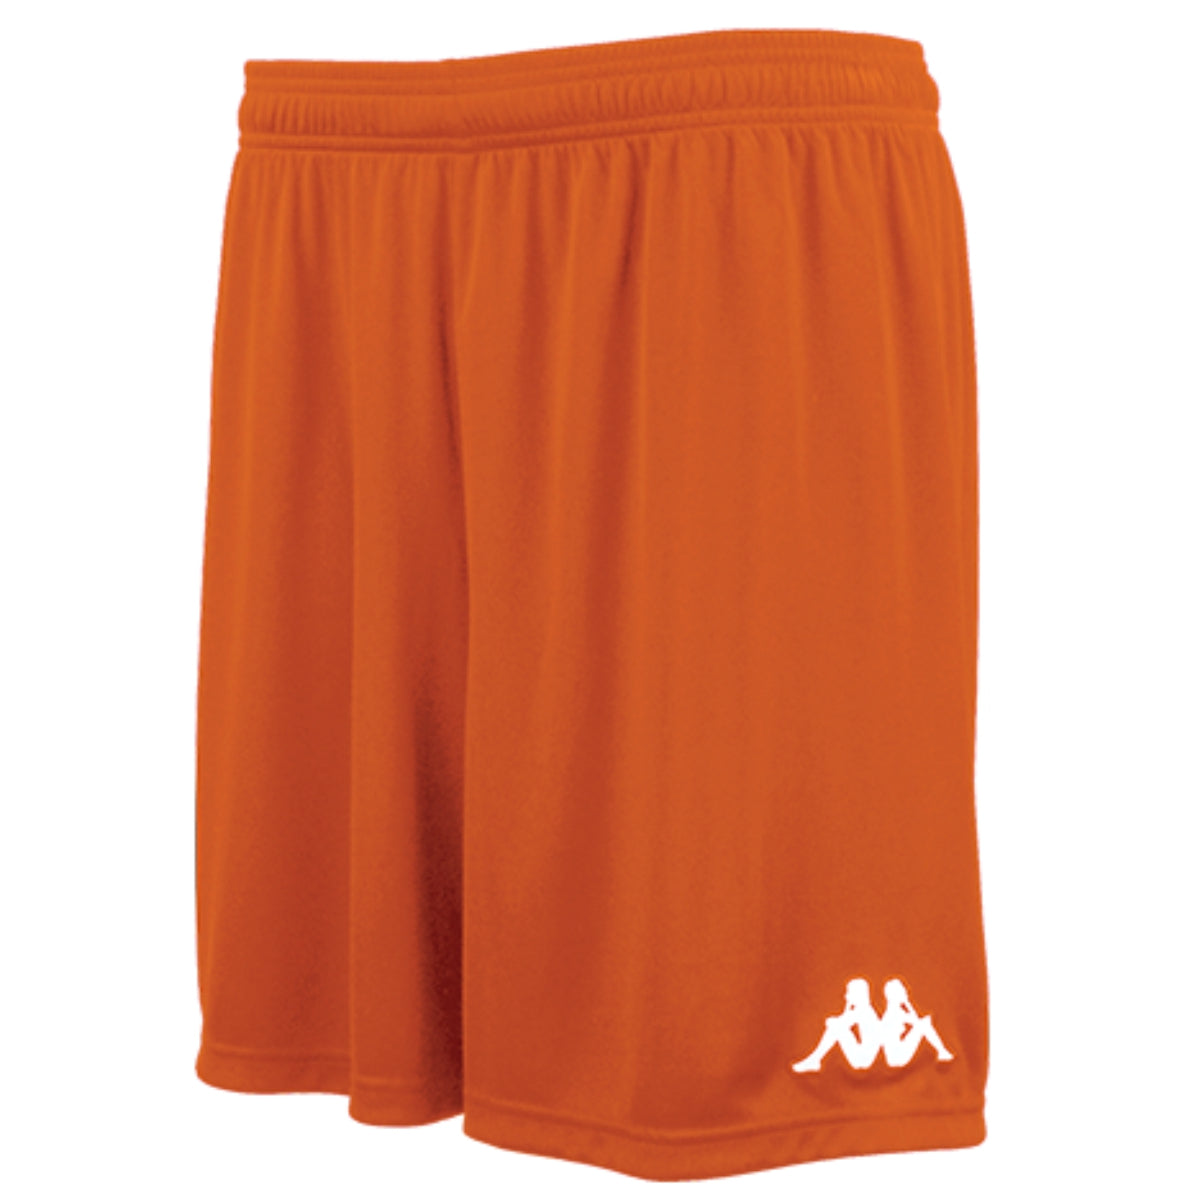 Kappa Vareso match short in orange flame with white embroidered Omini on the left leg.